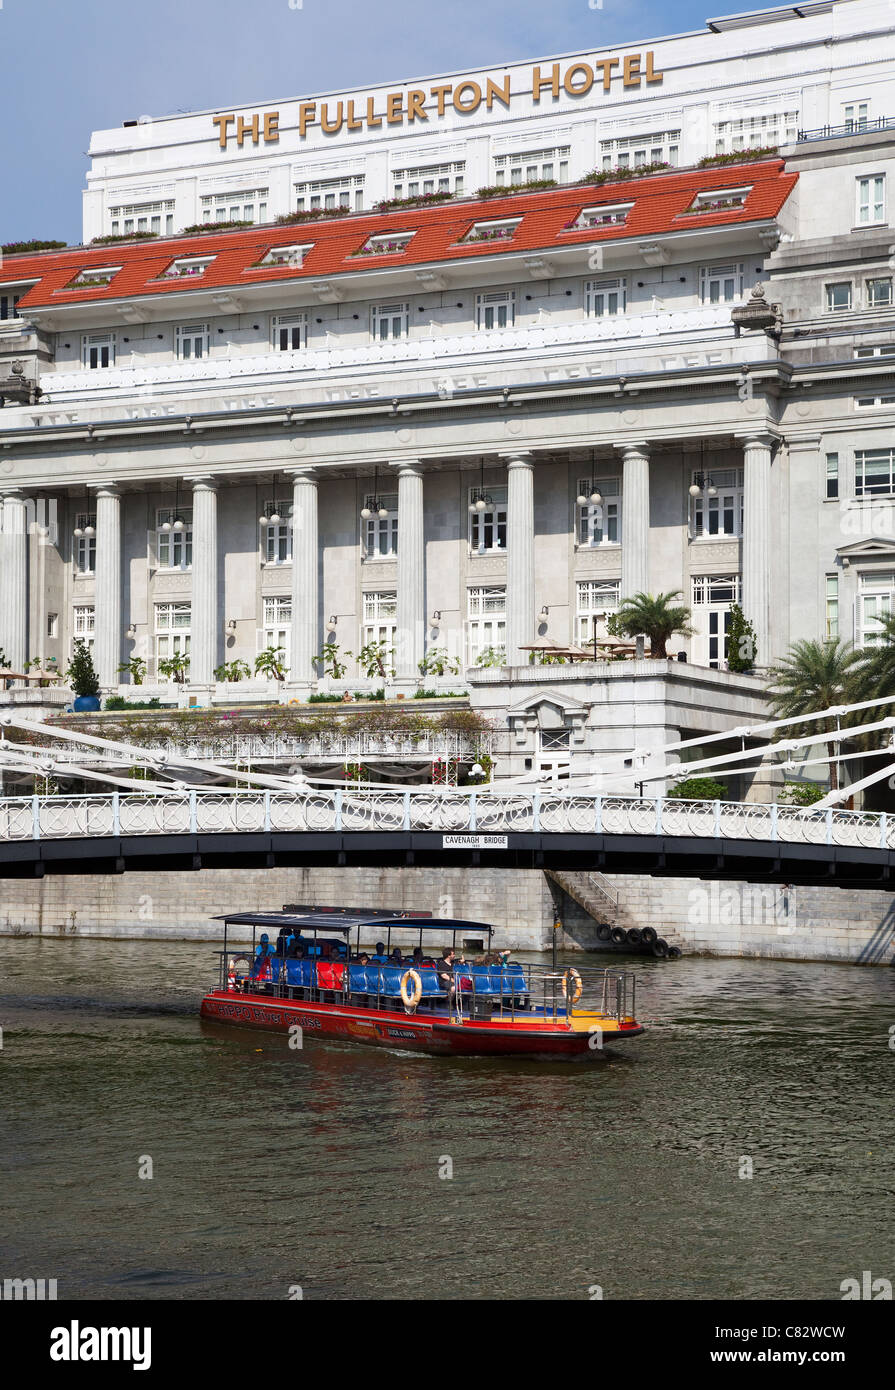 River Cruise and Fullerton Hotel, Singapore - Stock Image